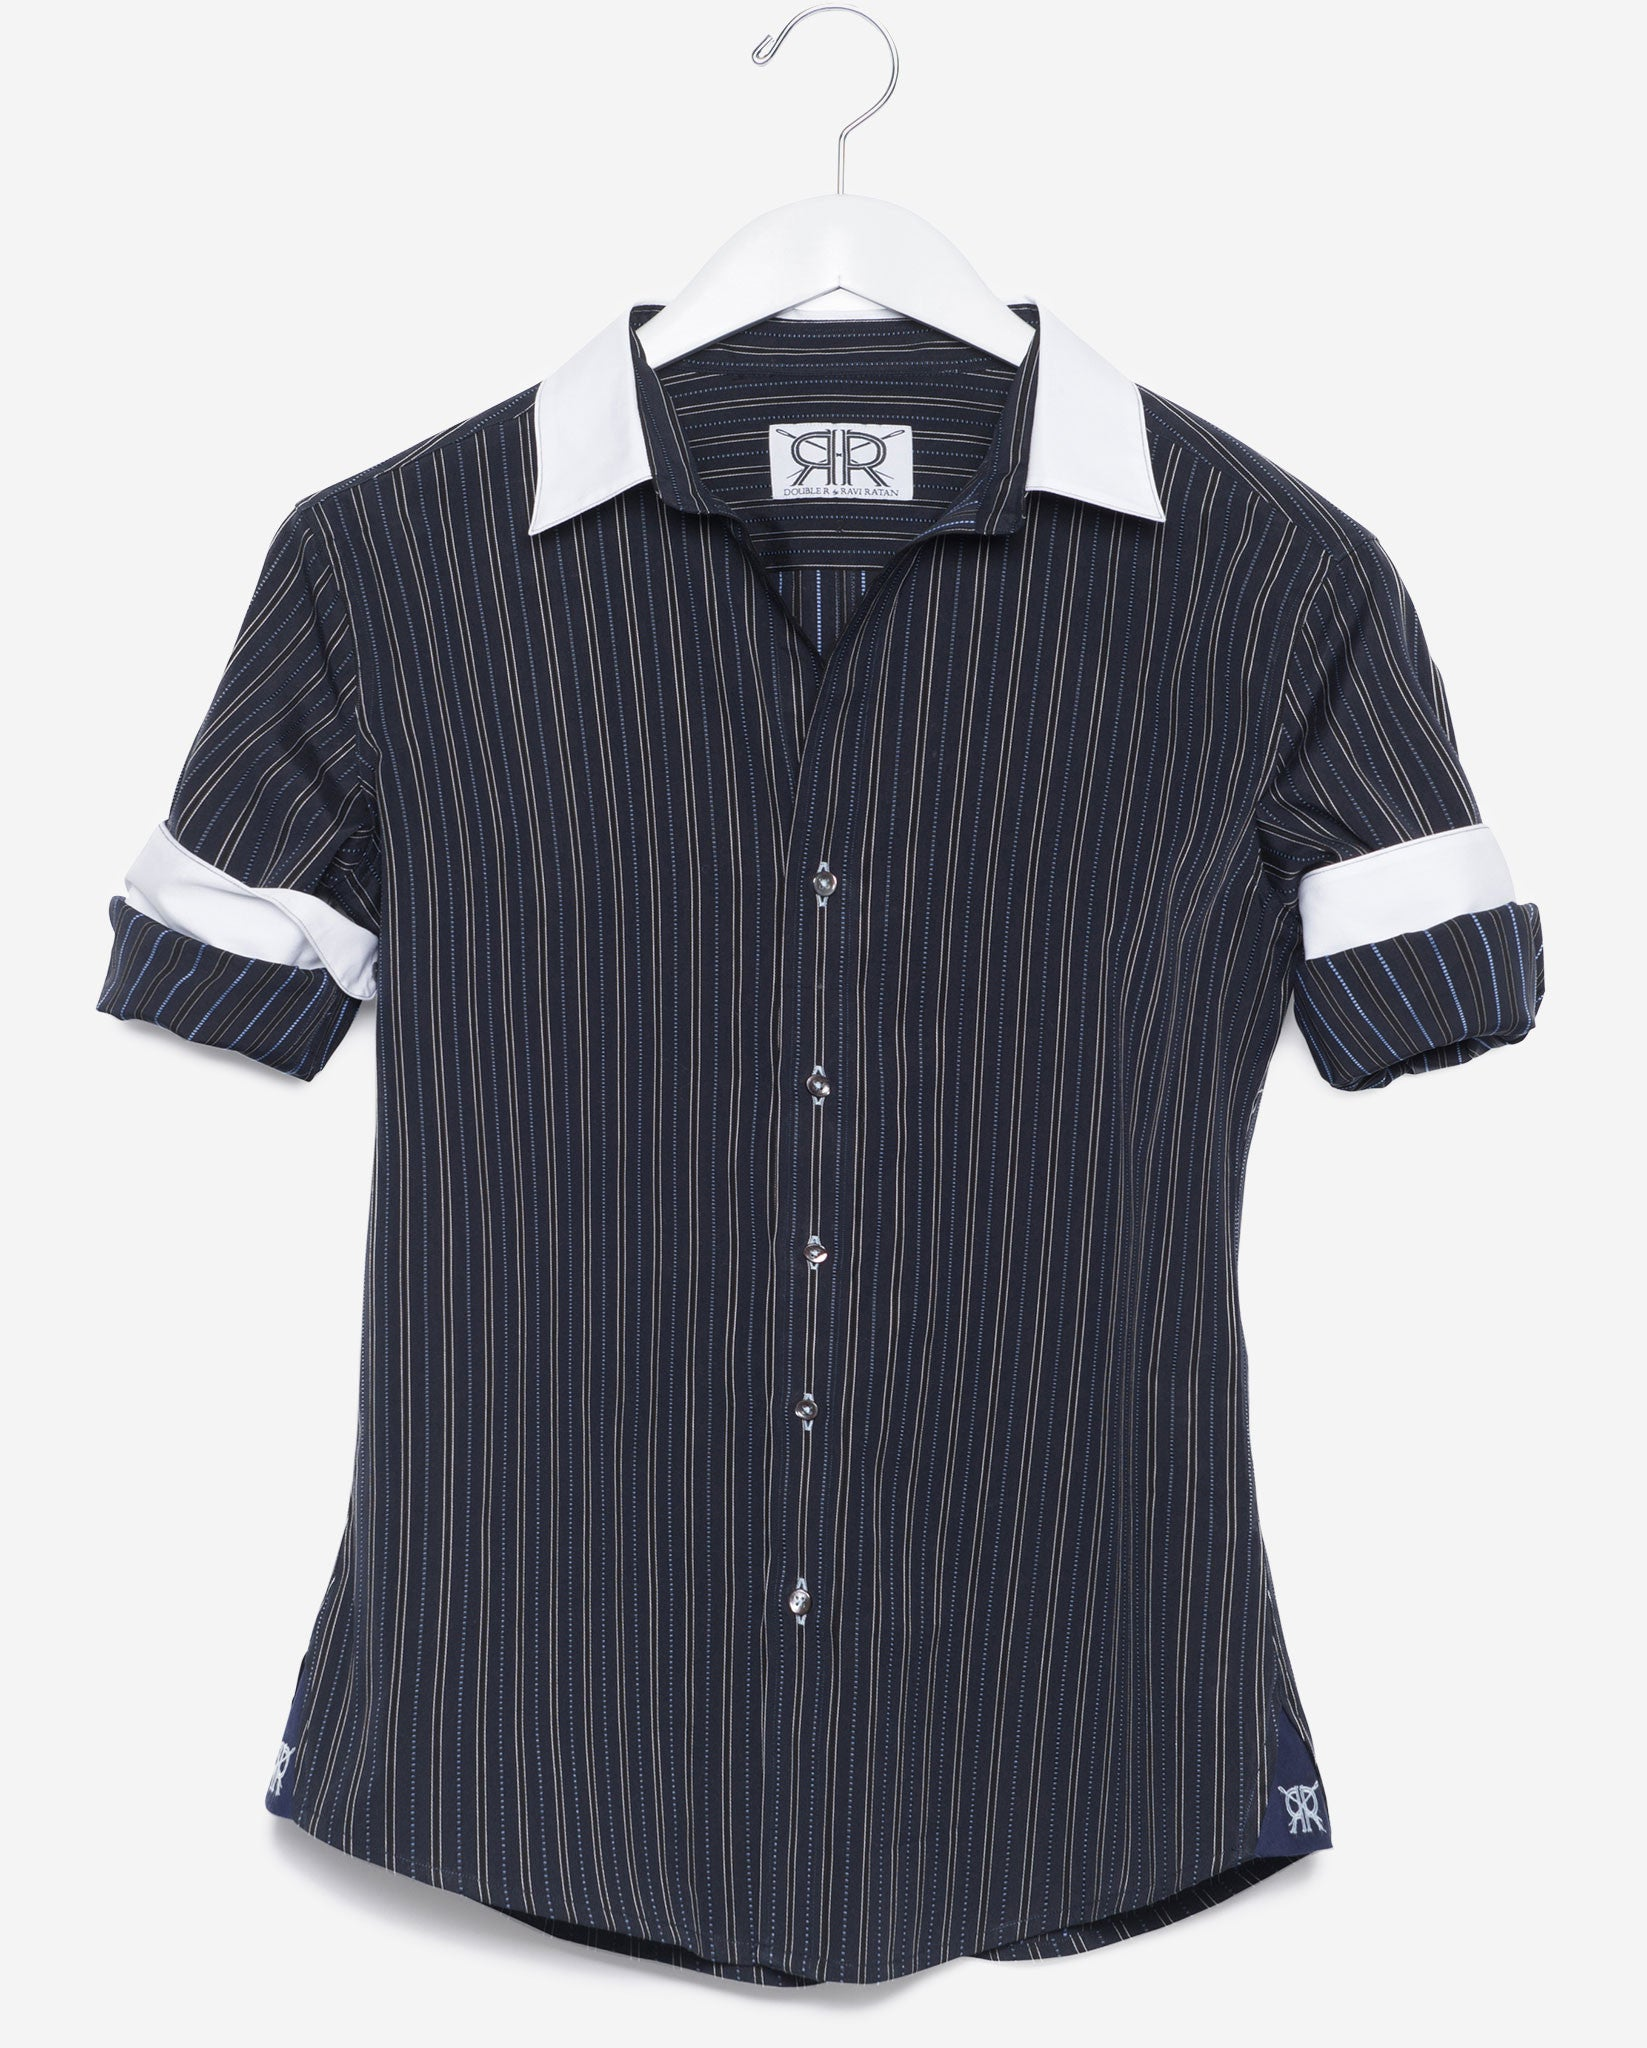 93eb39dfc1d16c Tailored Shirt- Navy Stripe with White Collar and Cuffs Women's ...